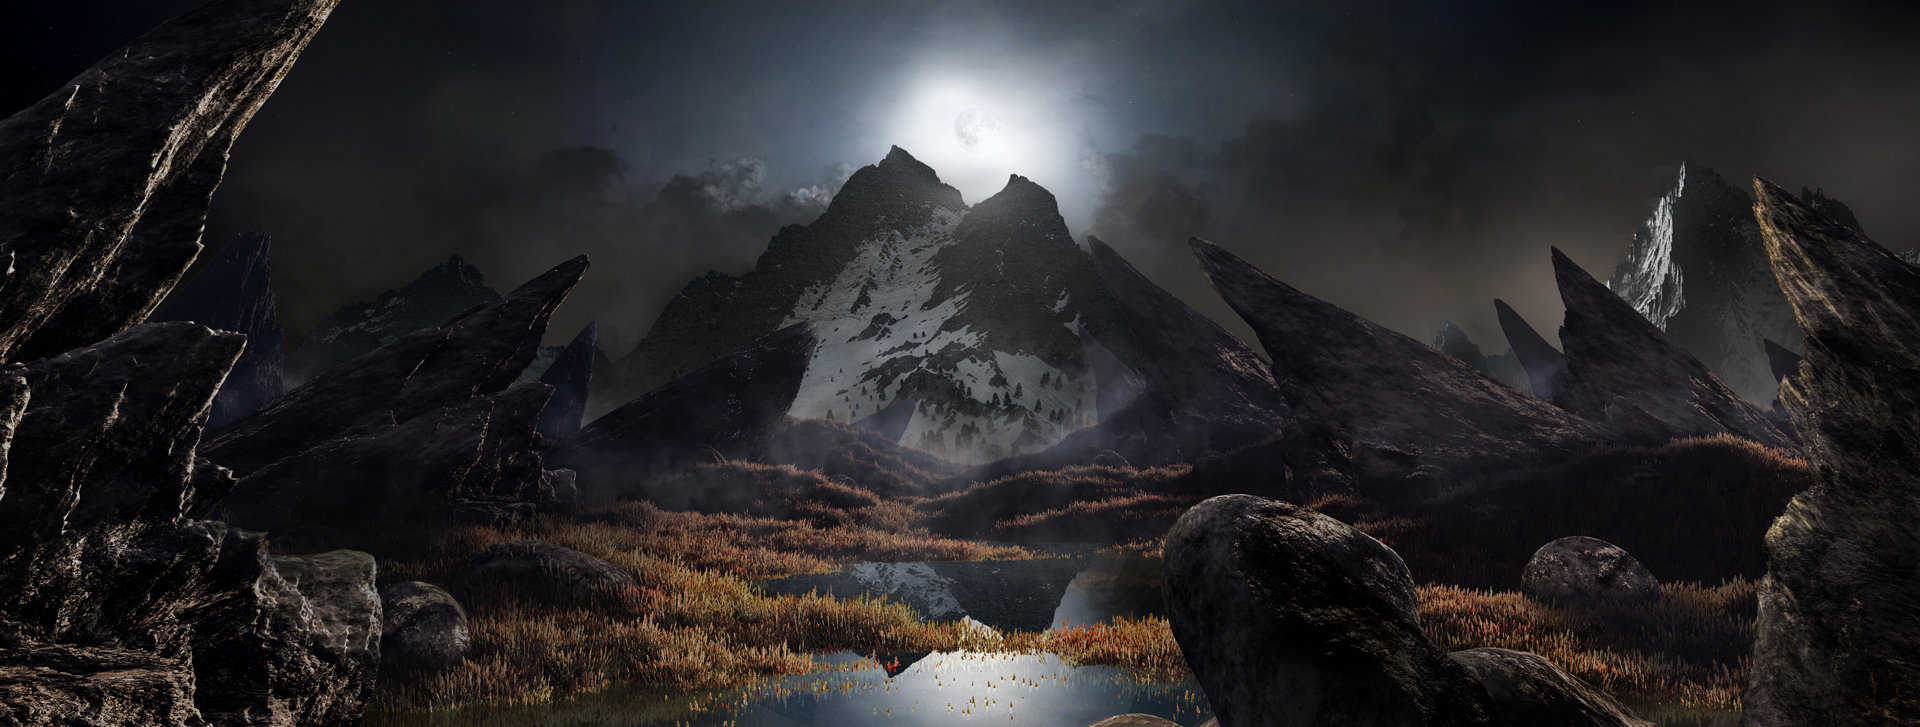 Scott richard moon light fantasy landscape matte updated by rich35211 d61n1n8